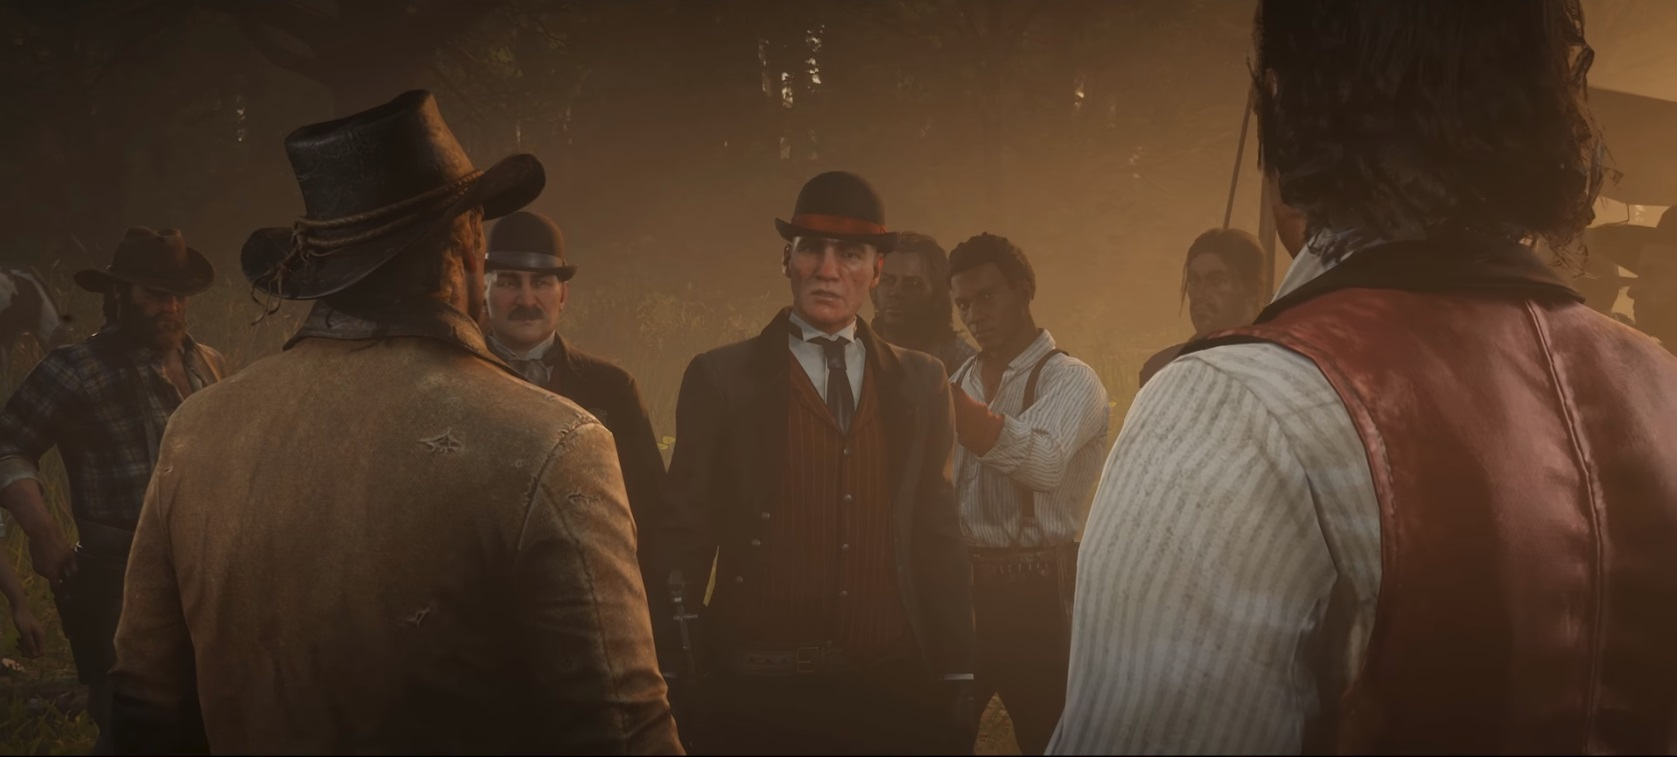 6 Takeaways From The New Red Dead Redemption 2 Trailer Usgamer